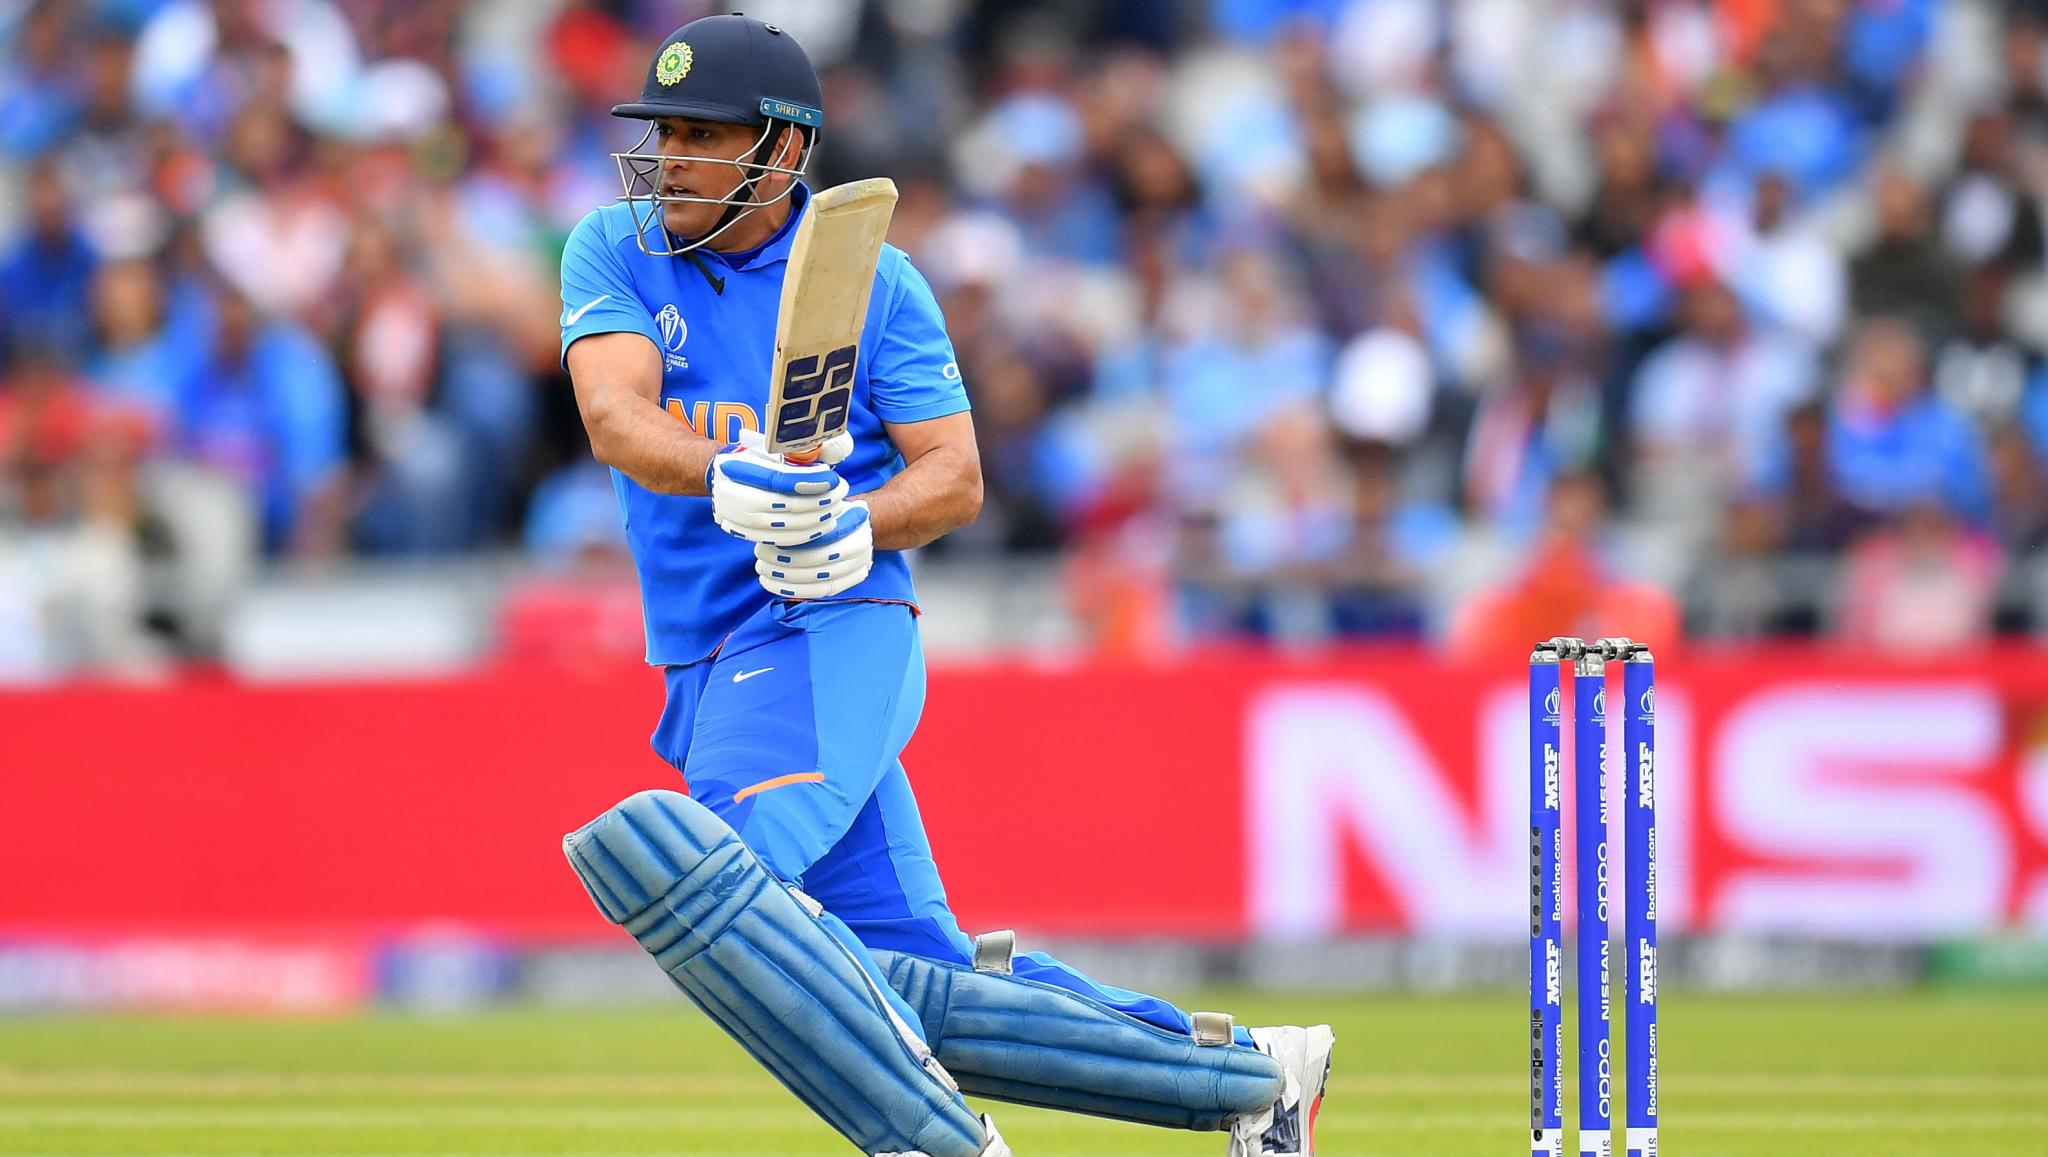 MS Dhoni Donates Rs 1 Lakh to Support the Family of Daily Wage Worker, Wife Sakshi Rawat Urges People to Join the Cause Amid Coronavirus Pandemic